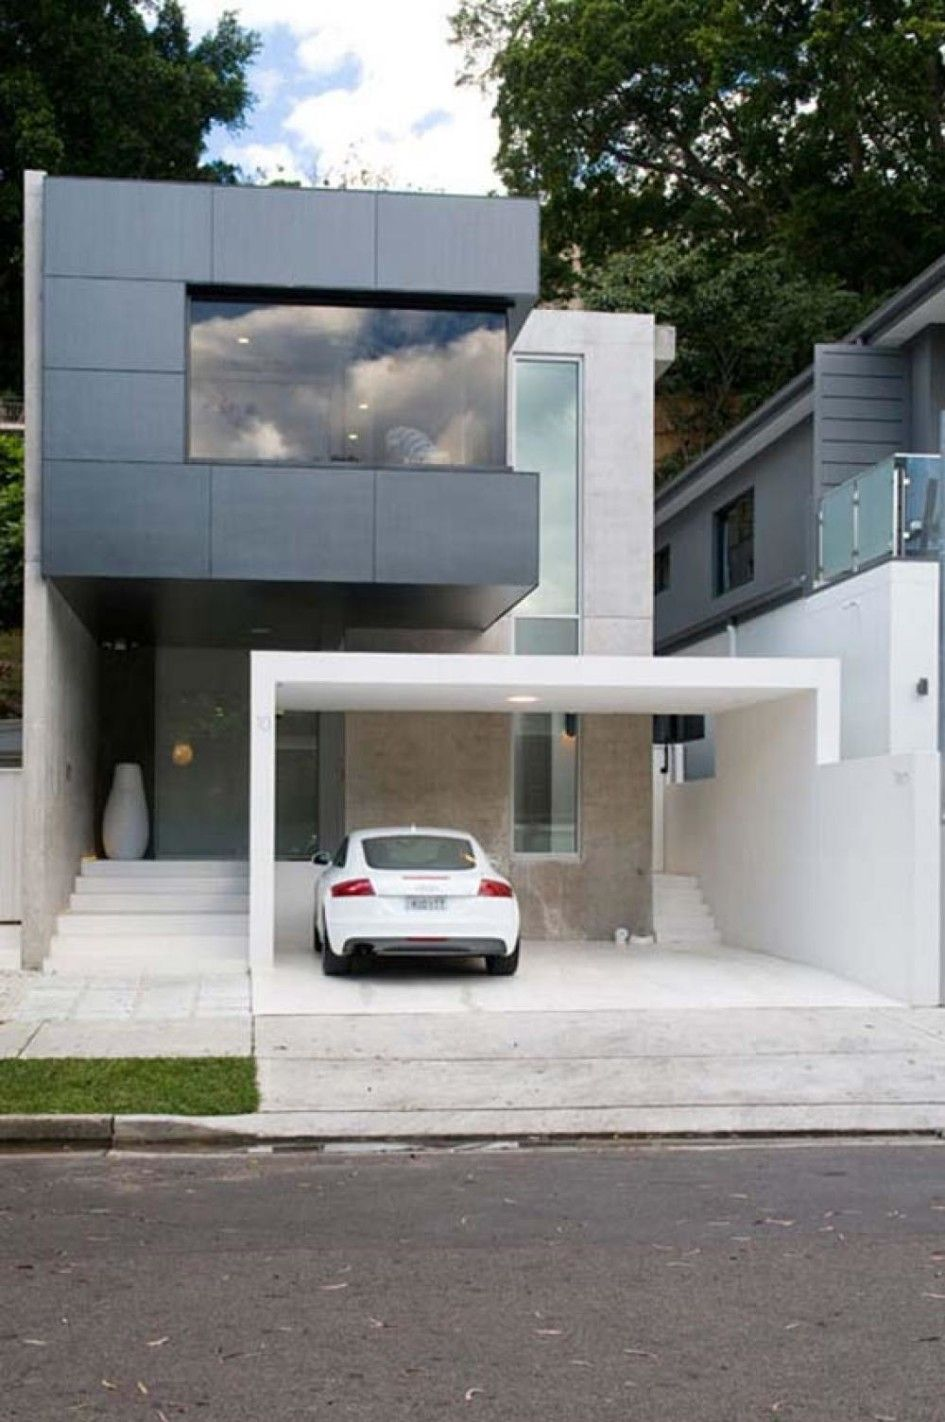 That Dark Grey Block We Donu0027t Like. The Carport, We Donu0027t Like. Home Design,  Minimalist House Architecture With Black Facade Design Color Equipped With  ...